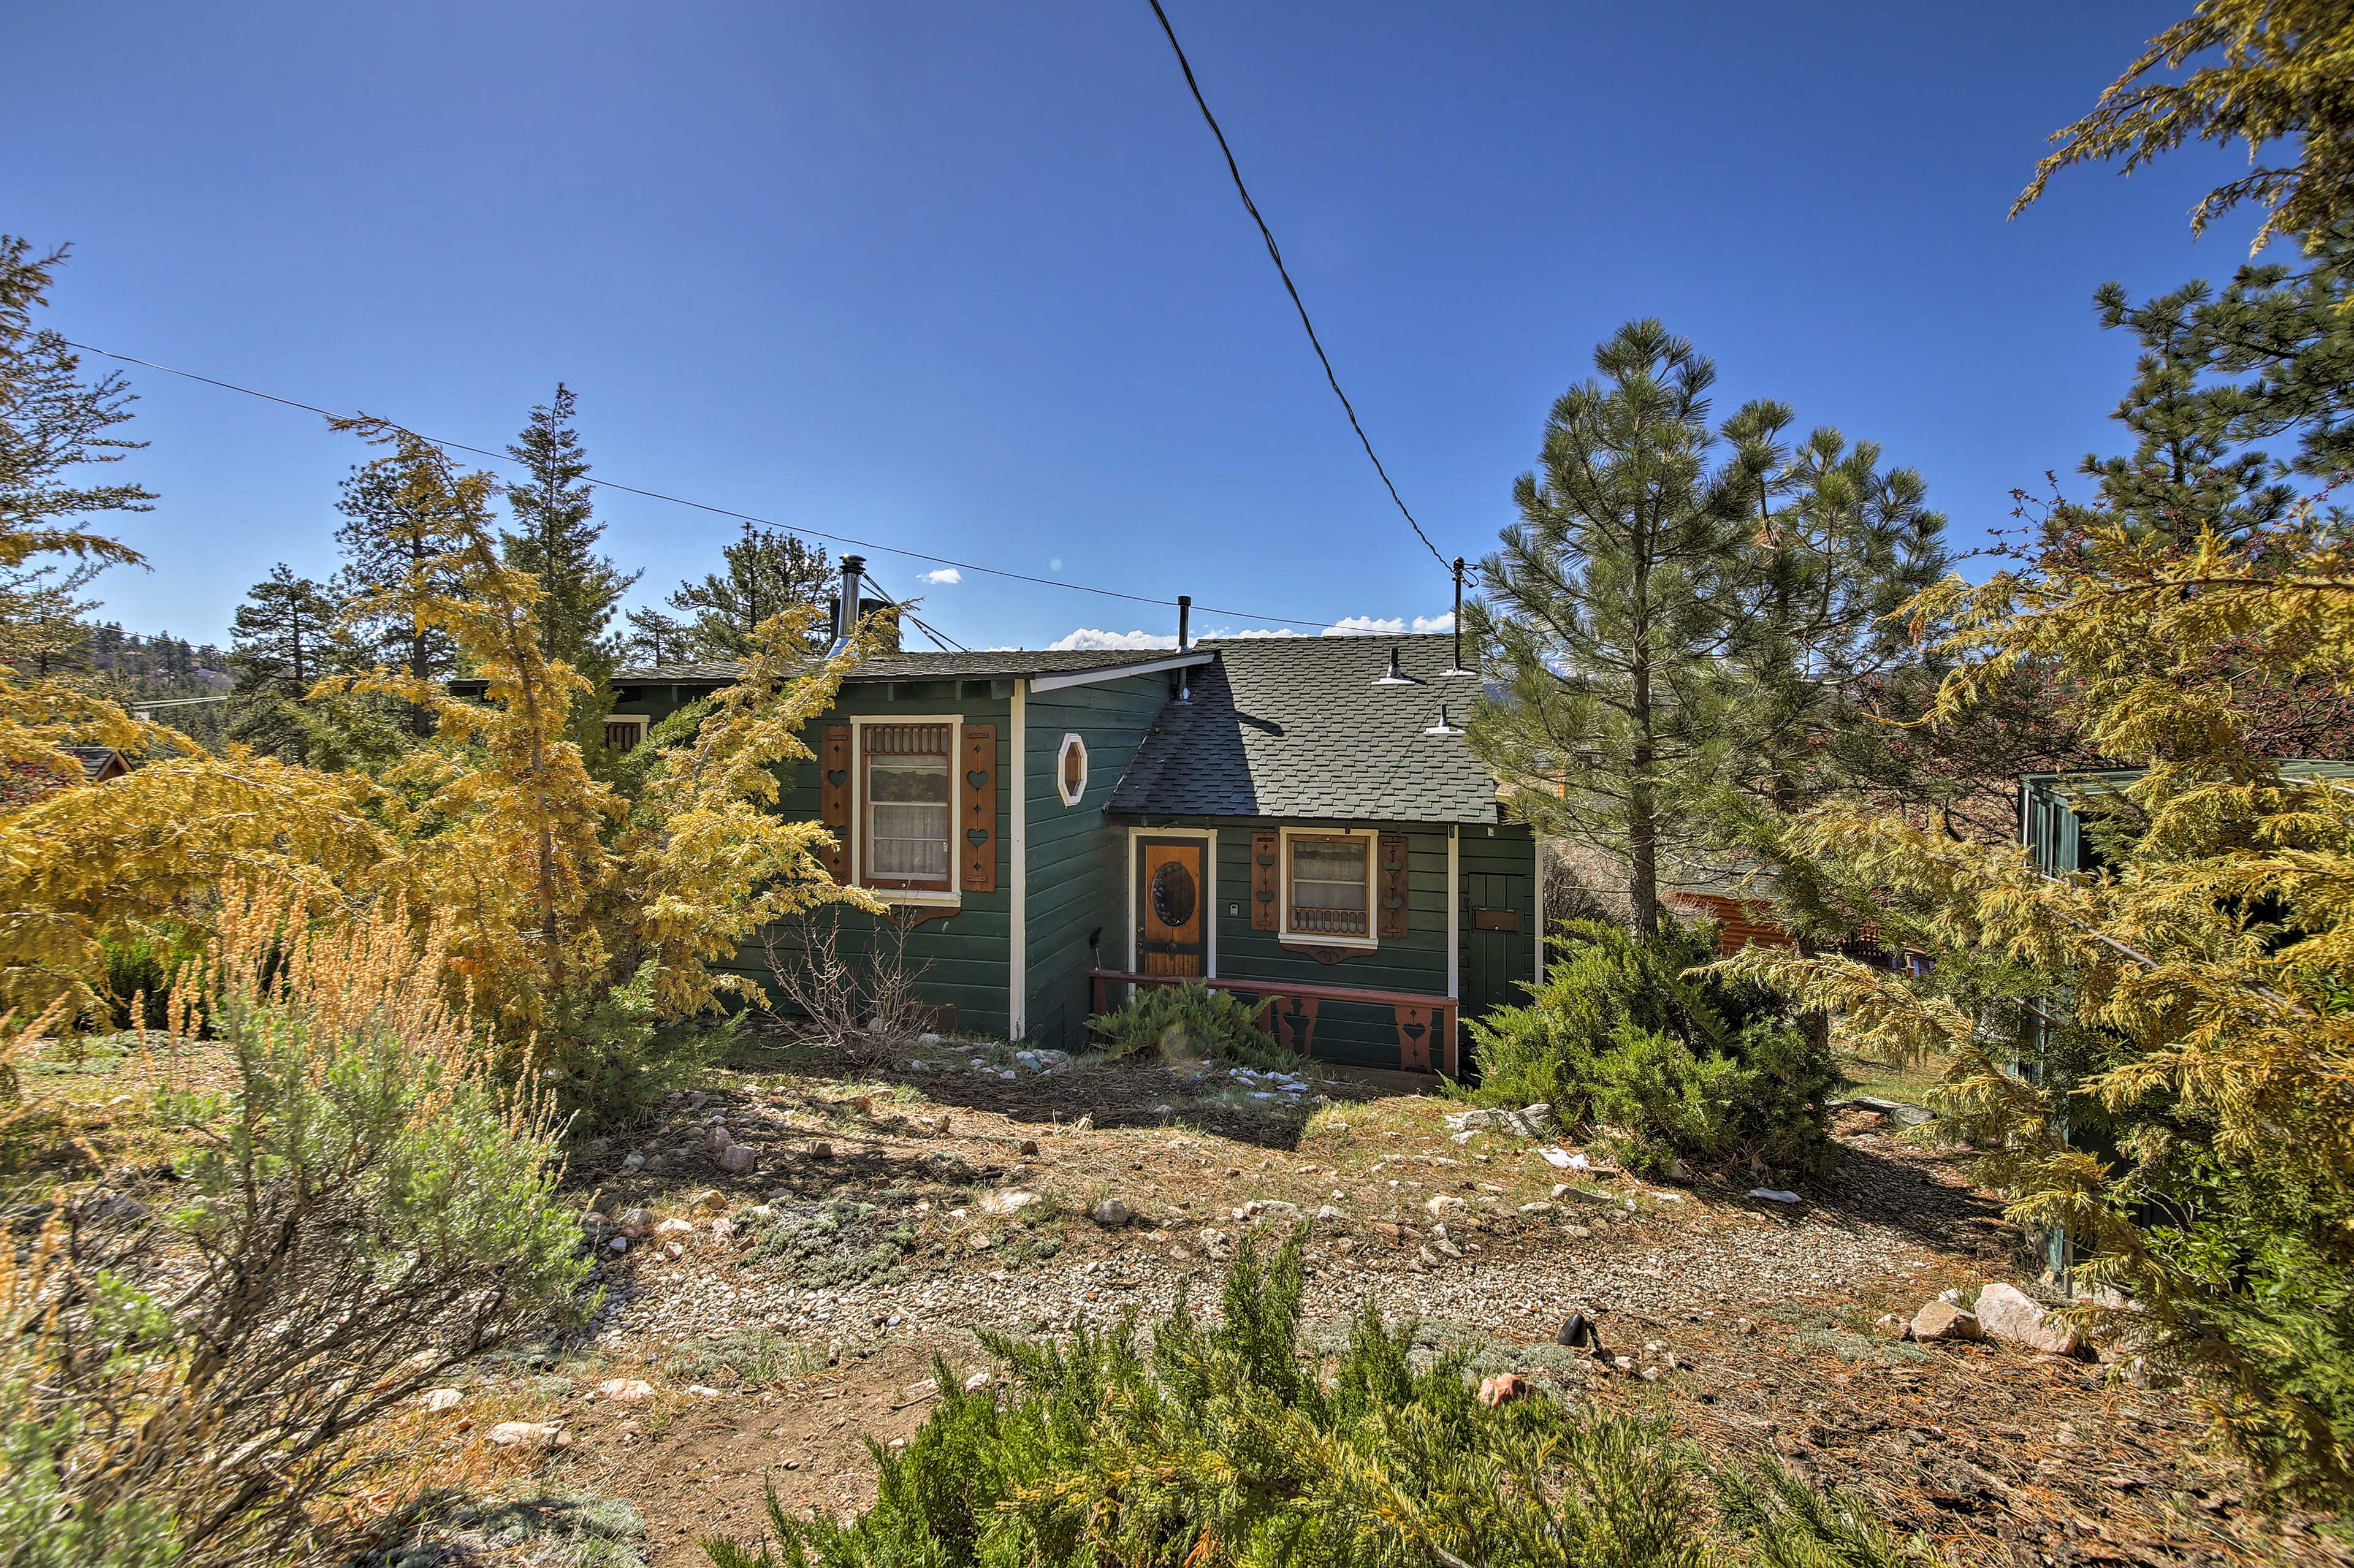 The cabin is minutes from ski slopes and summer fun!